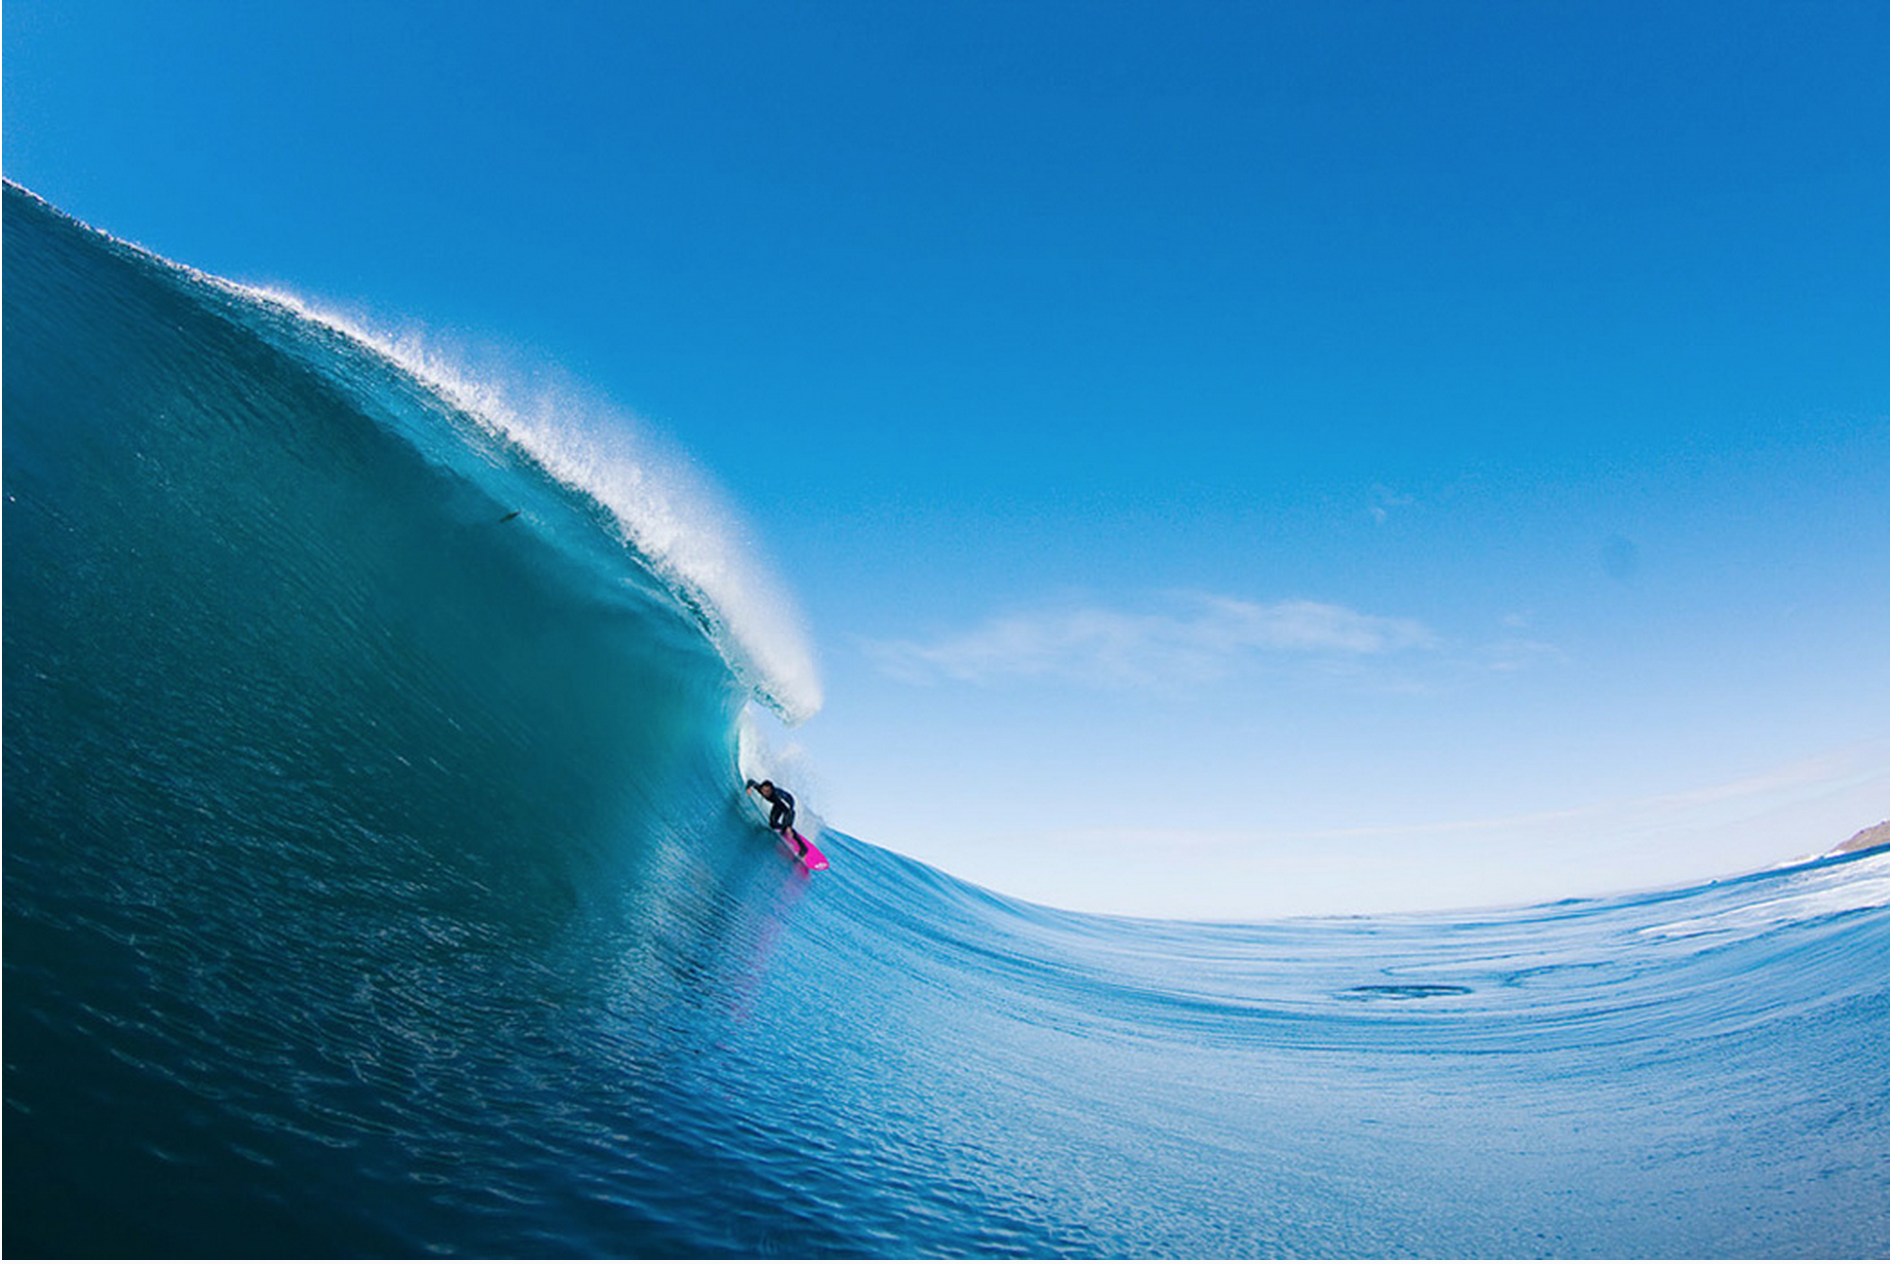 Quiksilver Surfing Wallpaper Todd's first major c...